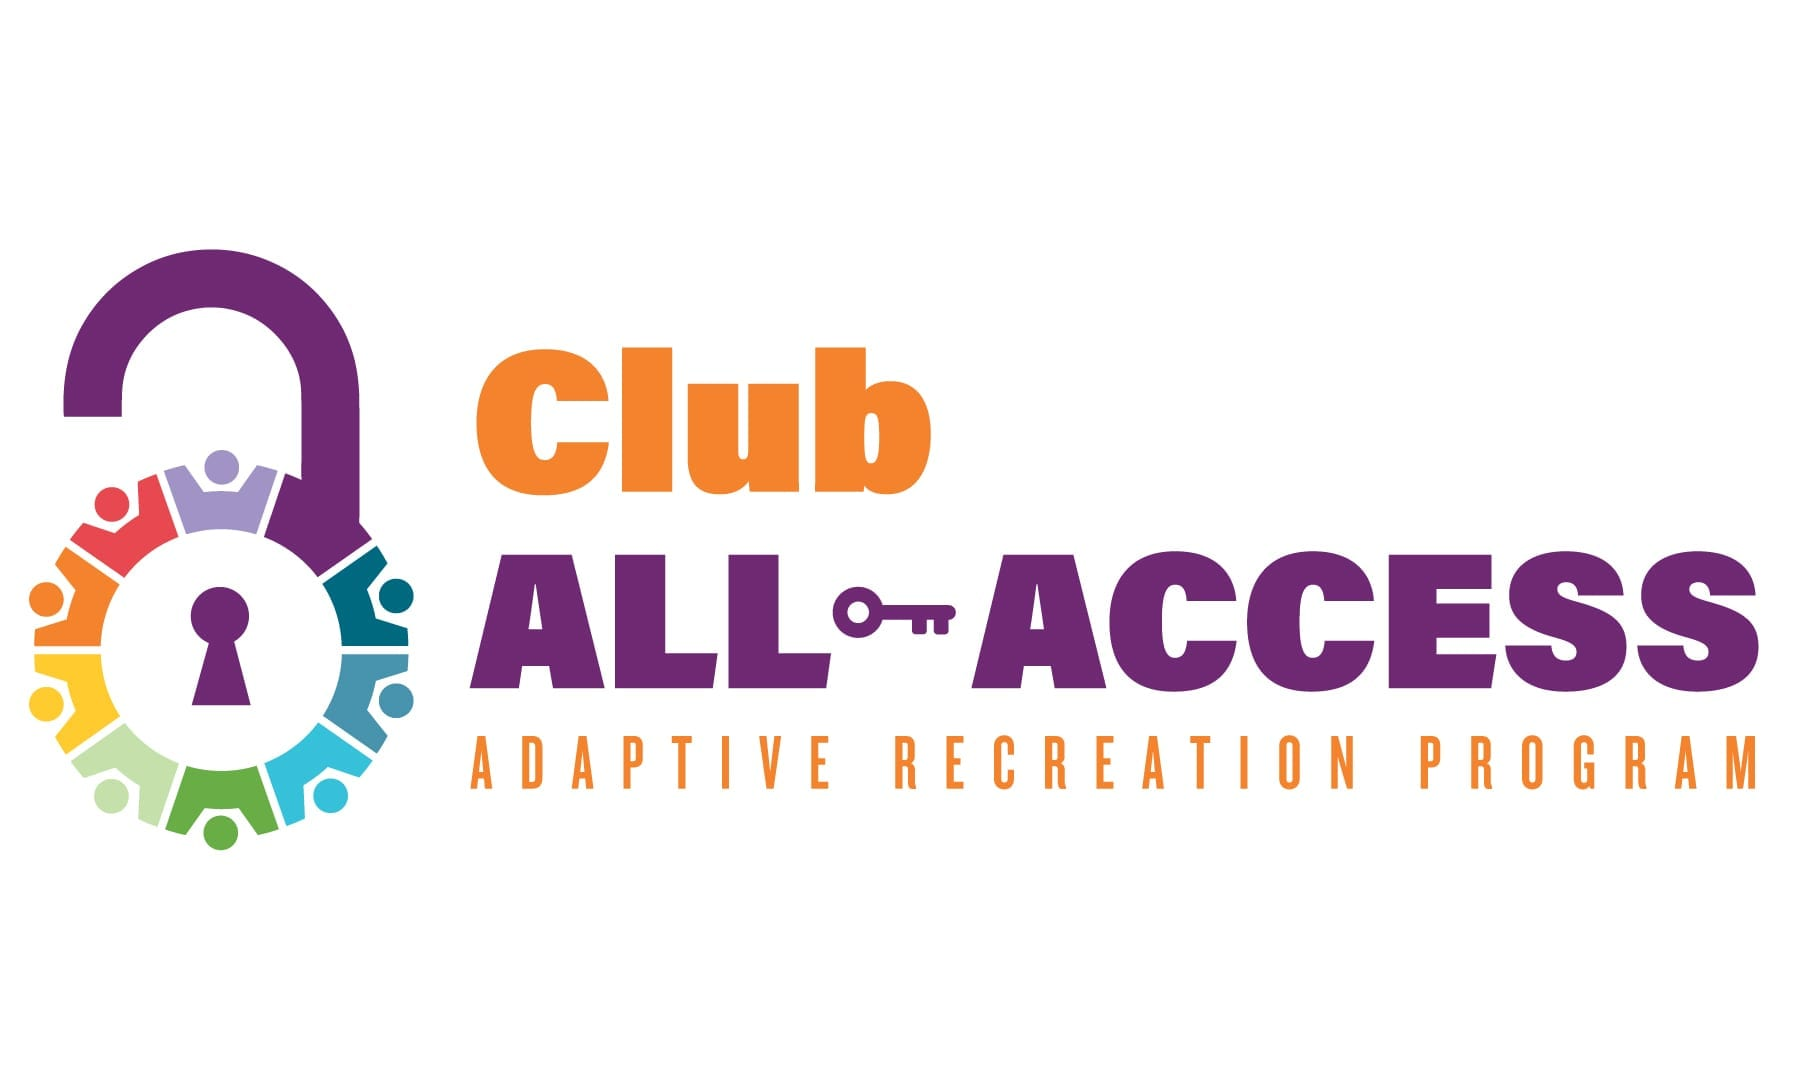 Club All-Access